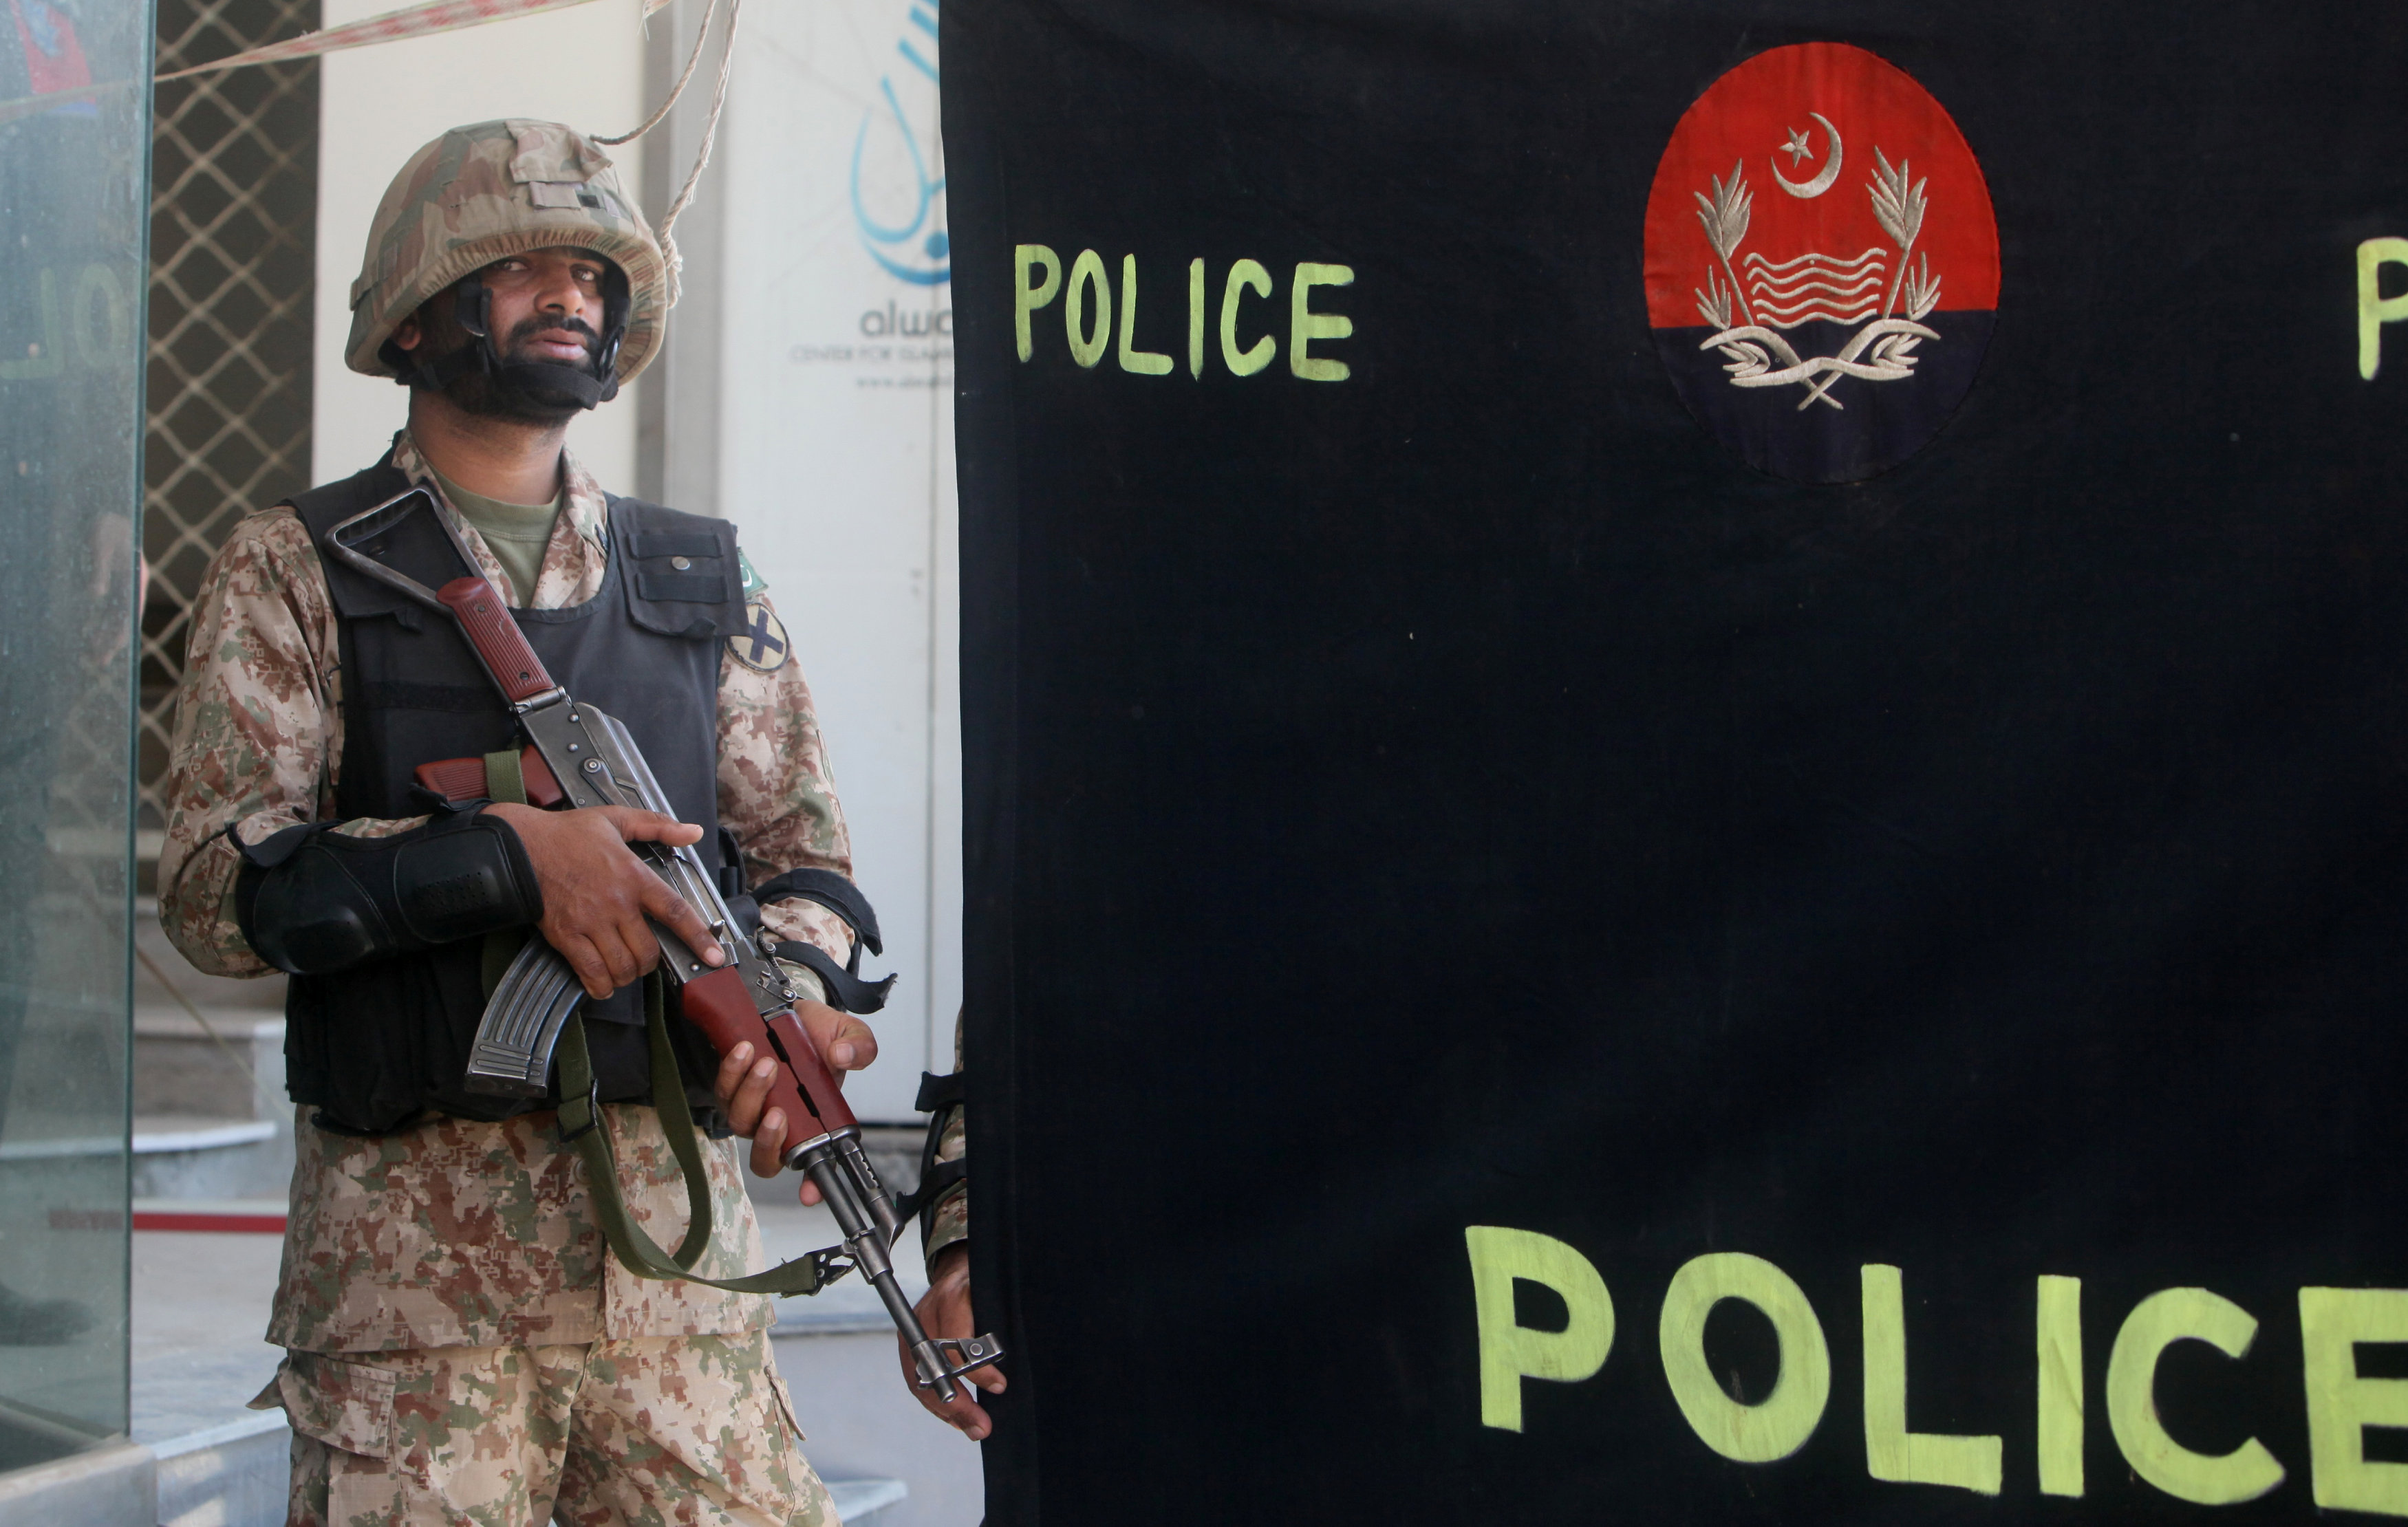 A soldier stands guard at the police screen as investigators collect evidence at the scene of a blast in a upscale neighborhood in Lahore, Pakistan February 23, 2017. Credit: REUTERS/Mohsin Raza